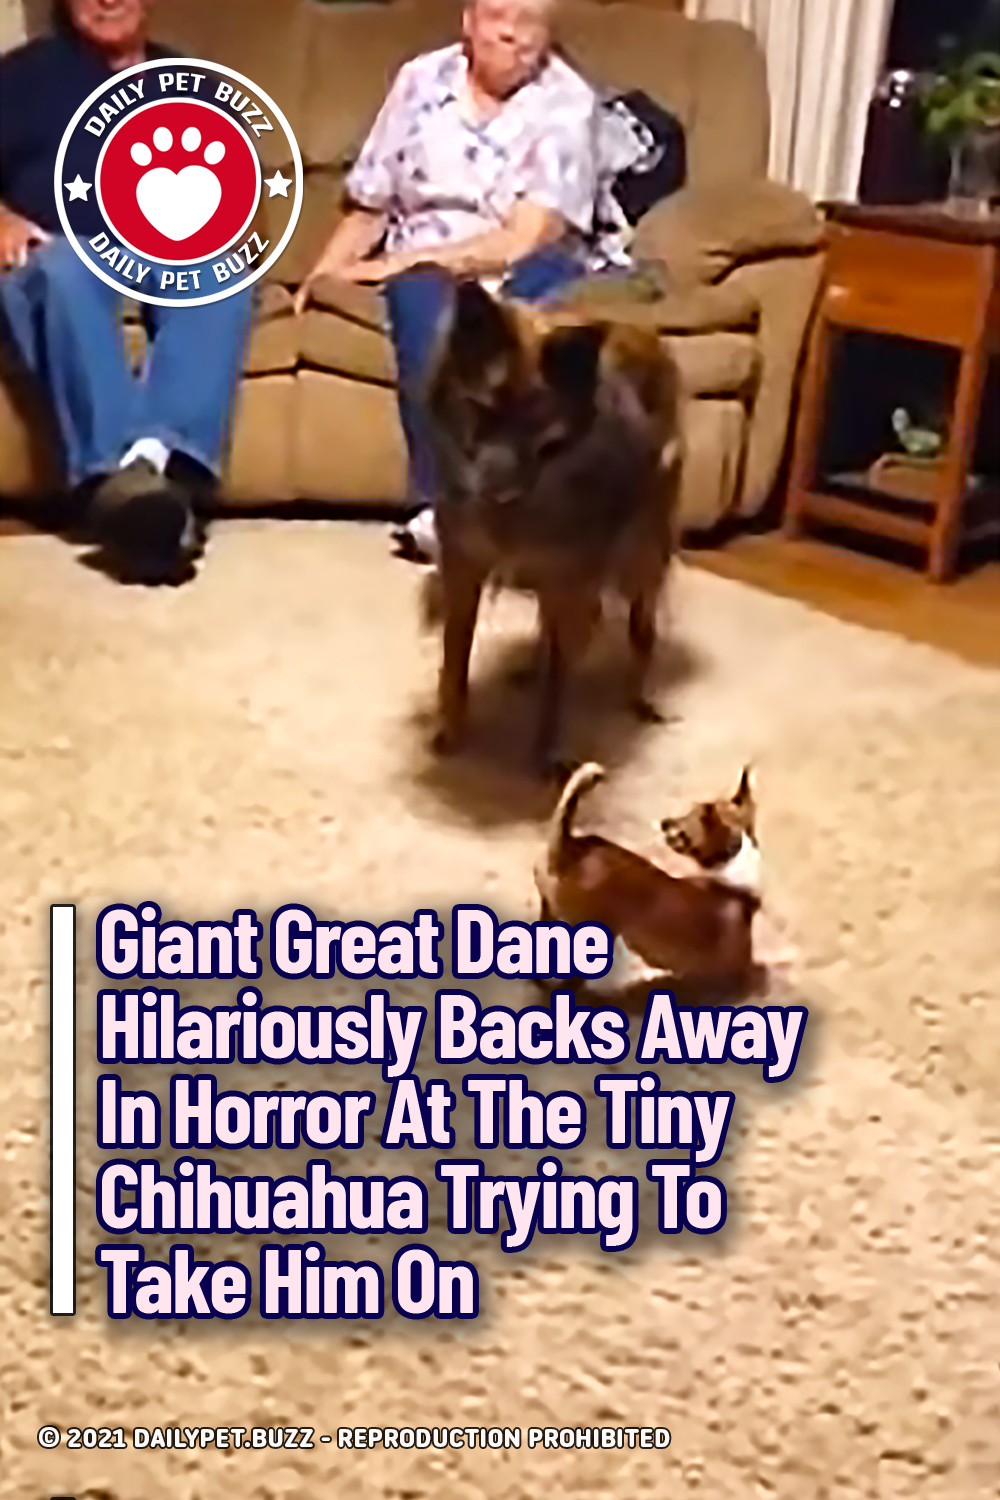 Giant Great Dane Hilariously Backs Away In Horror At The Tiny Chihuahua Trying To Take Him On